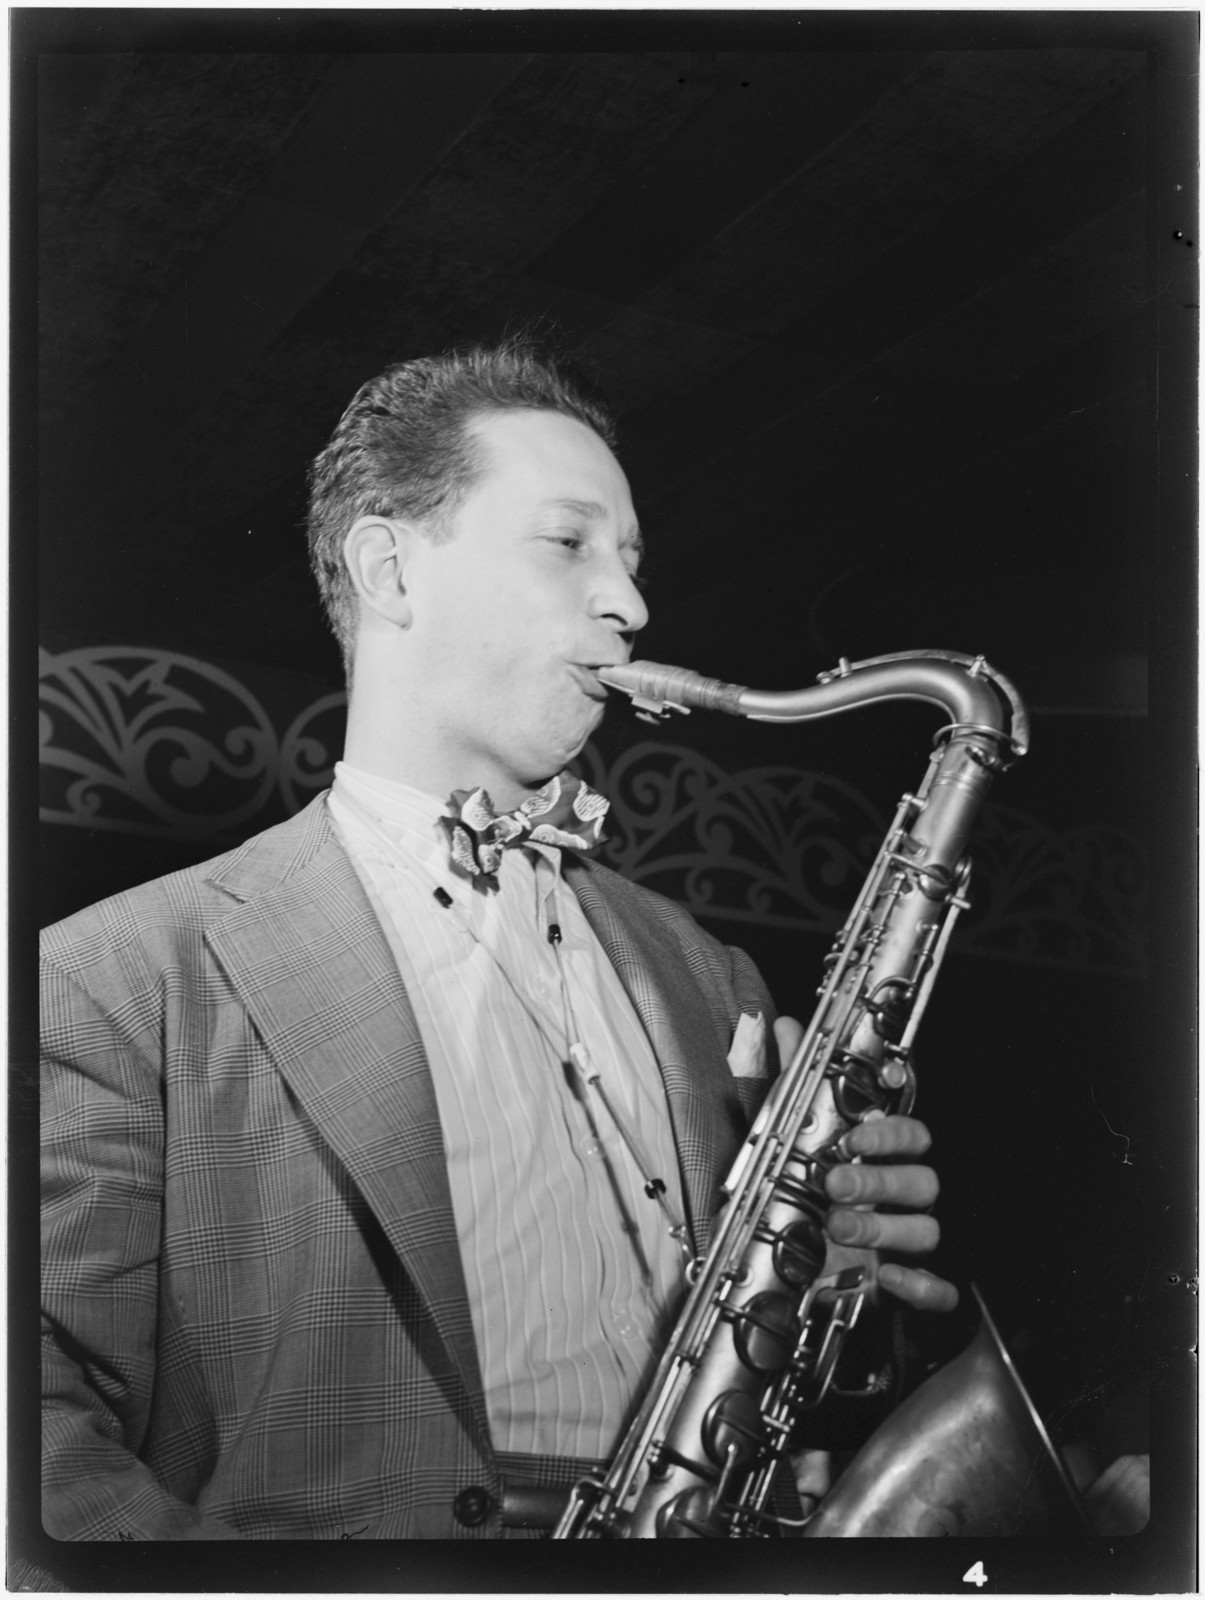 [Portrait of Sam Donahue, Aquarium, New York, N.Y., ca. Dec. 1946]